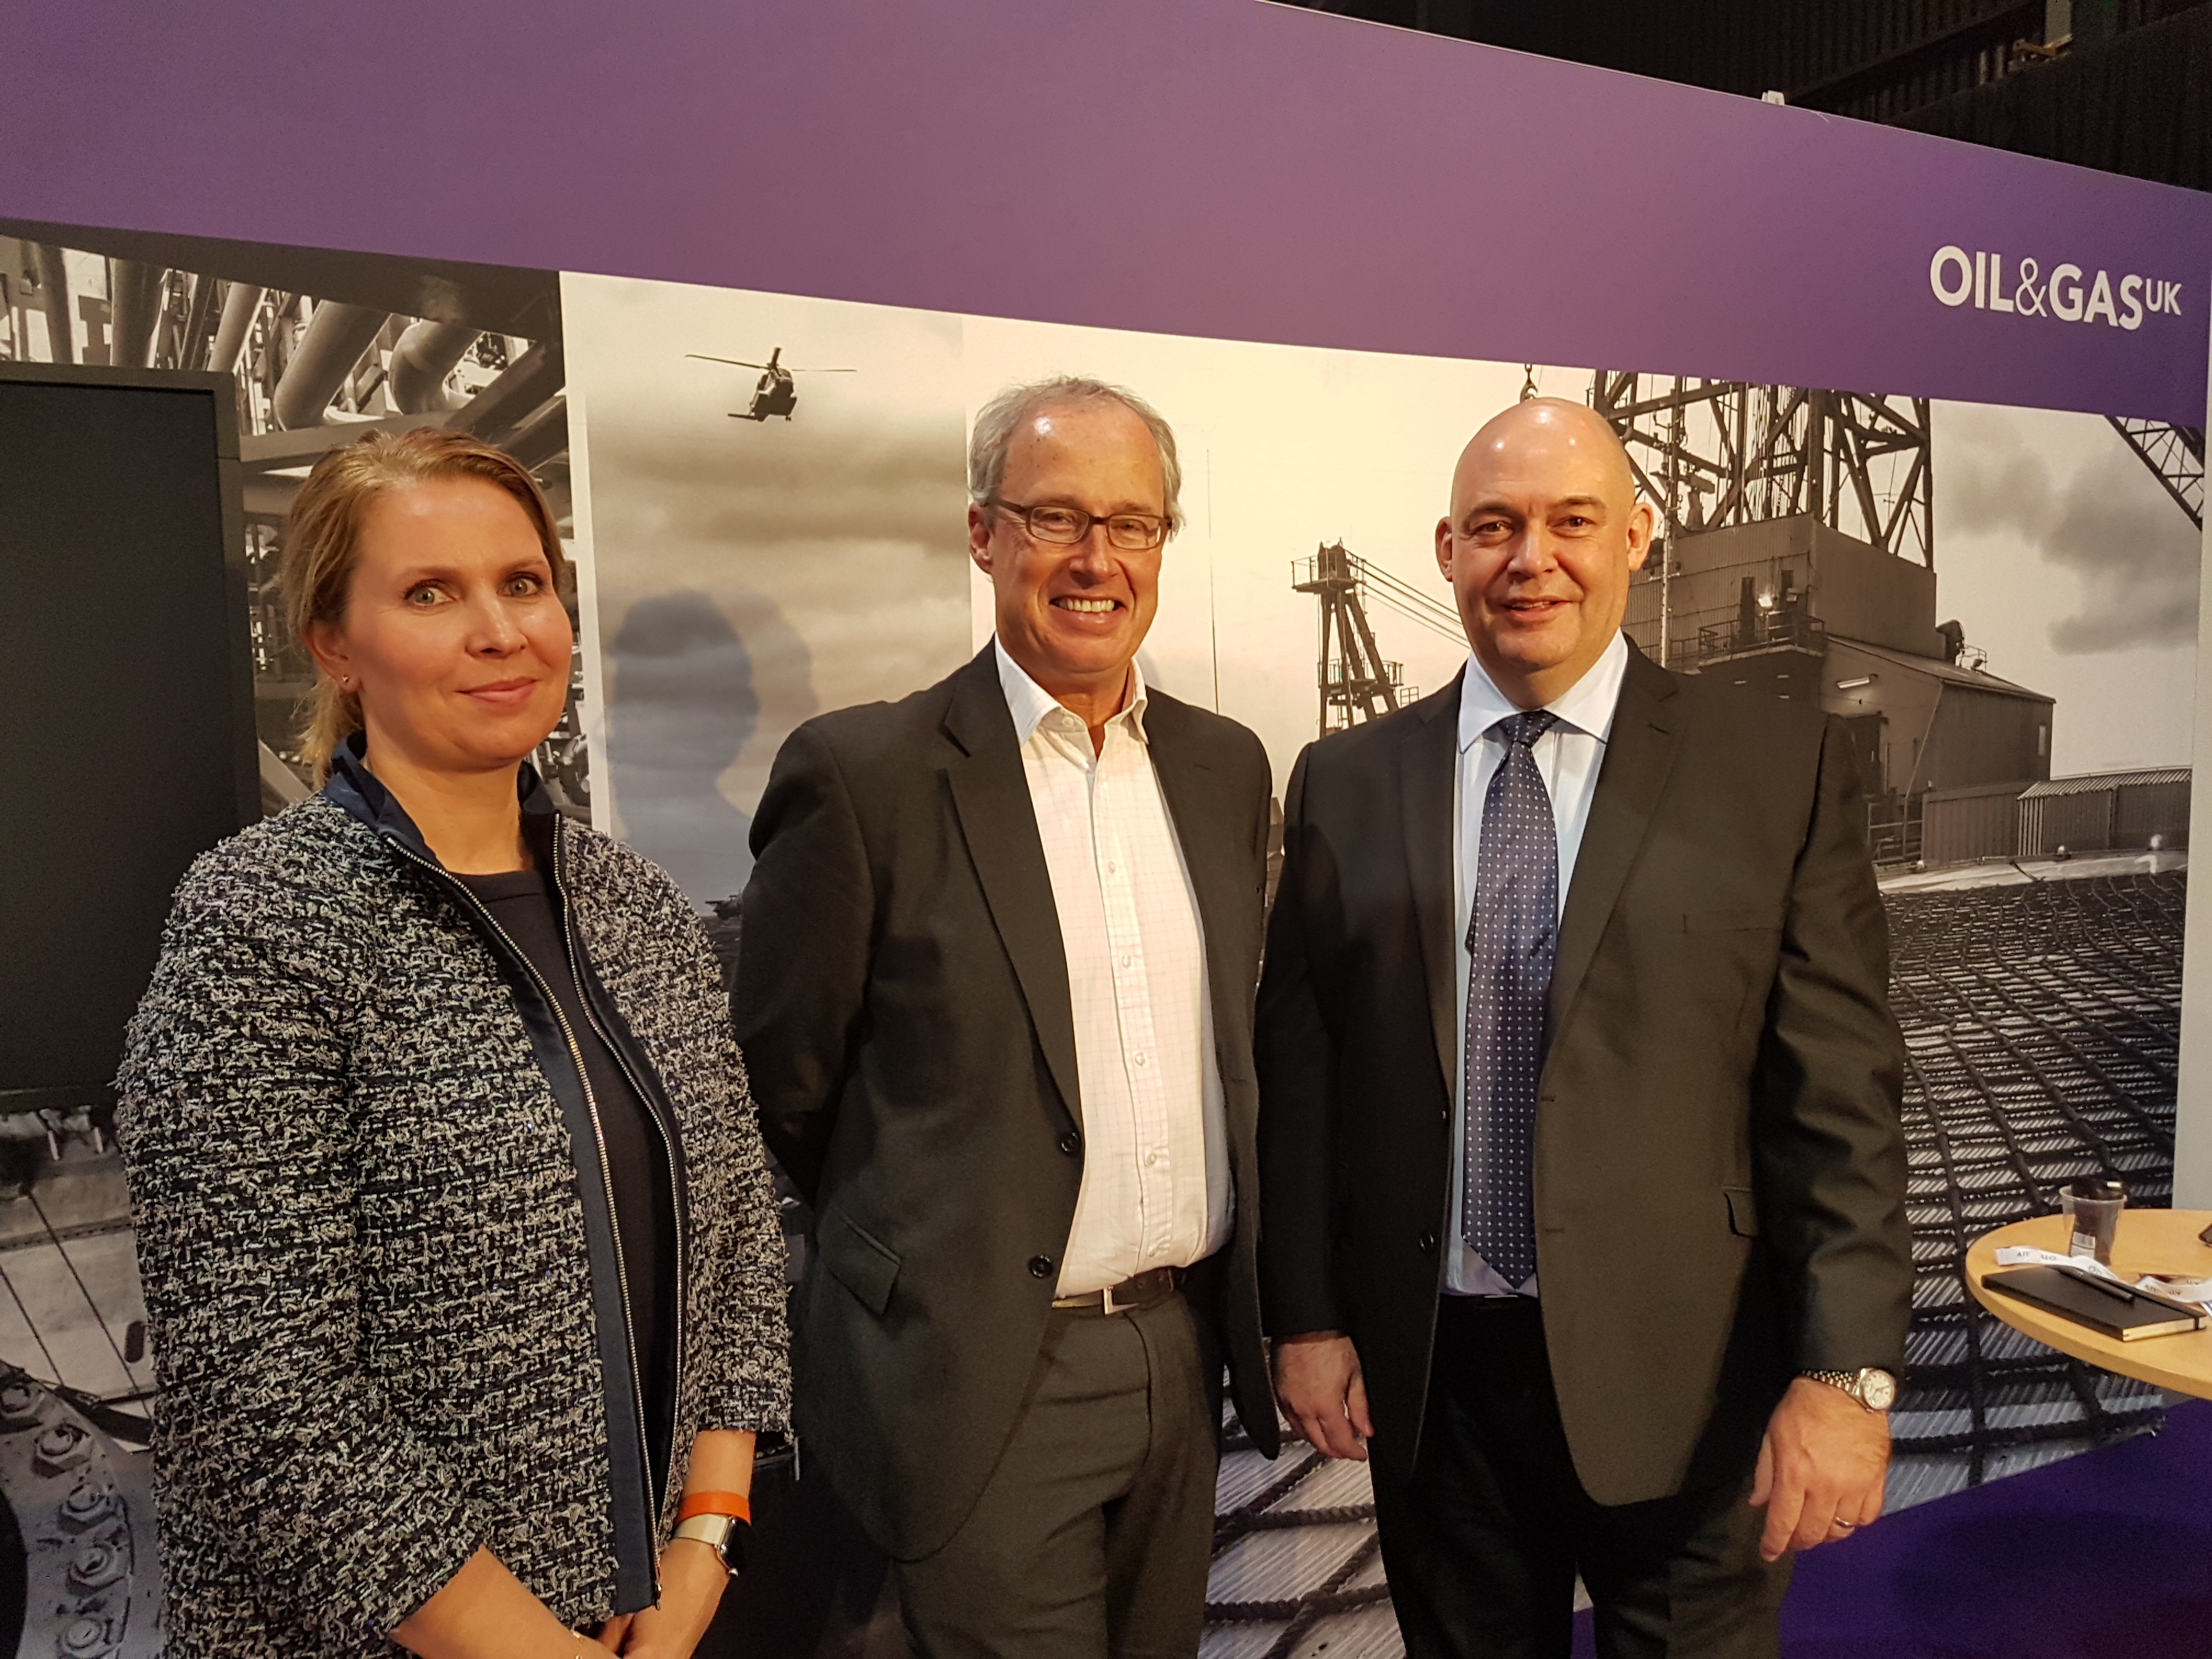 Maja Kildedal of Equinor, Robin Allan from Premier Oil (centre) and John McColl from Oil and Gas.